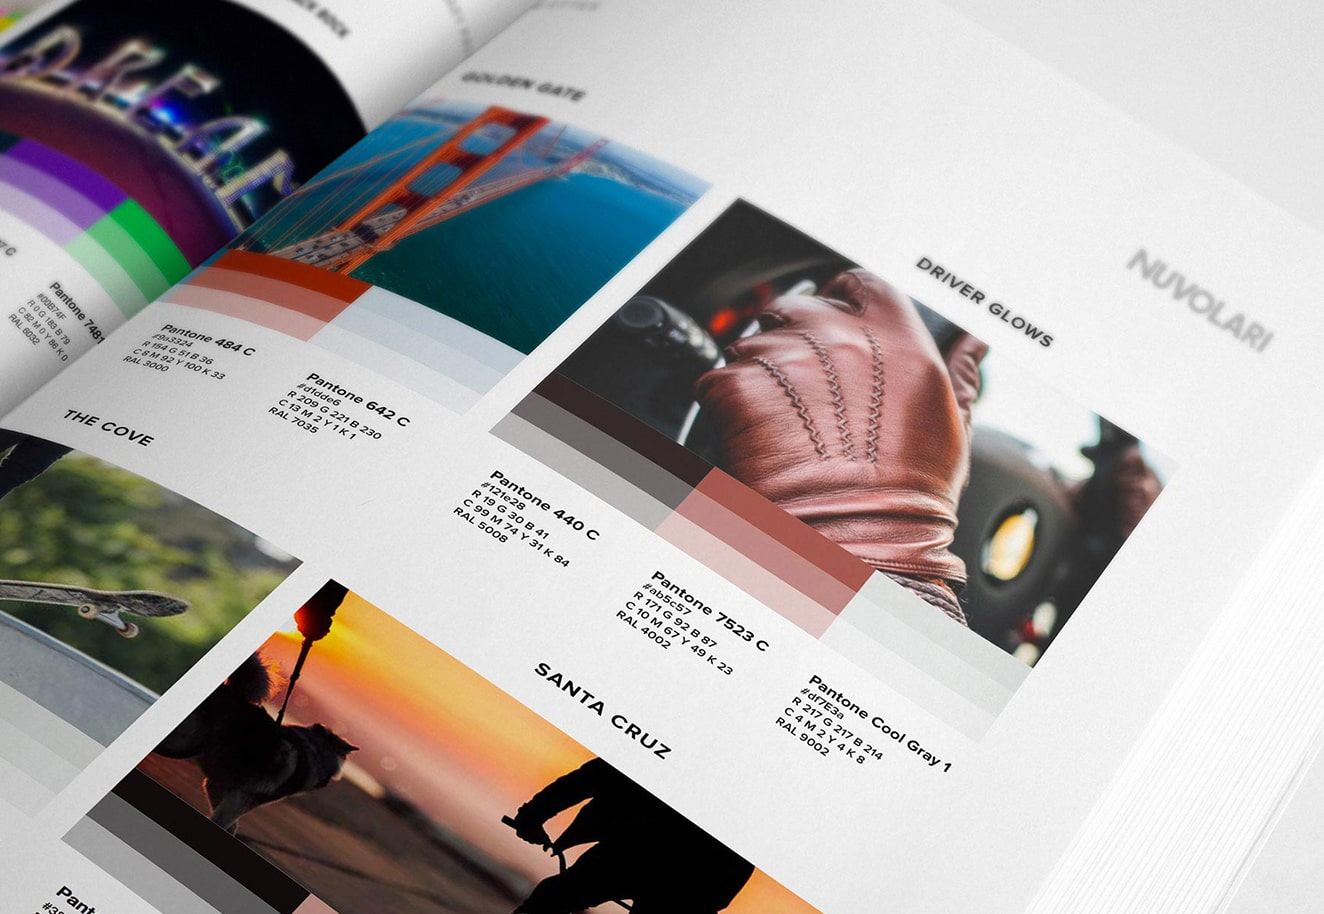 Ecommerce website design and branding services by for Nuvolari - Luther Dsgn ecommerce development agency